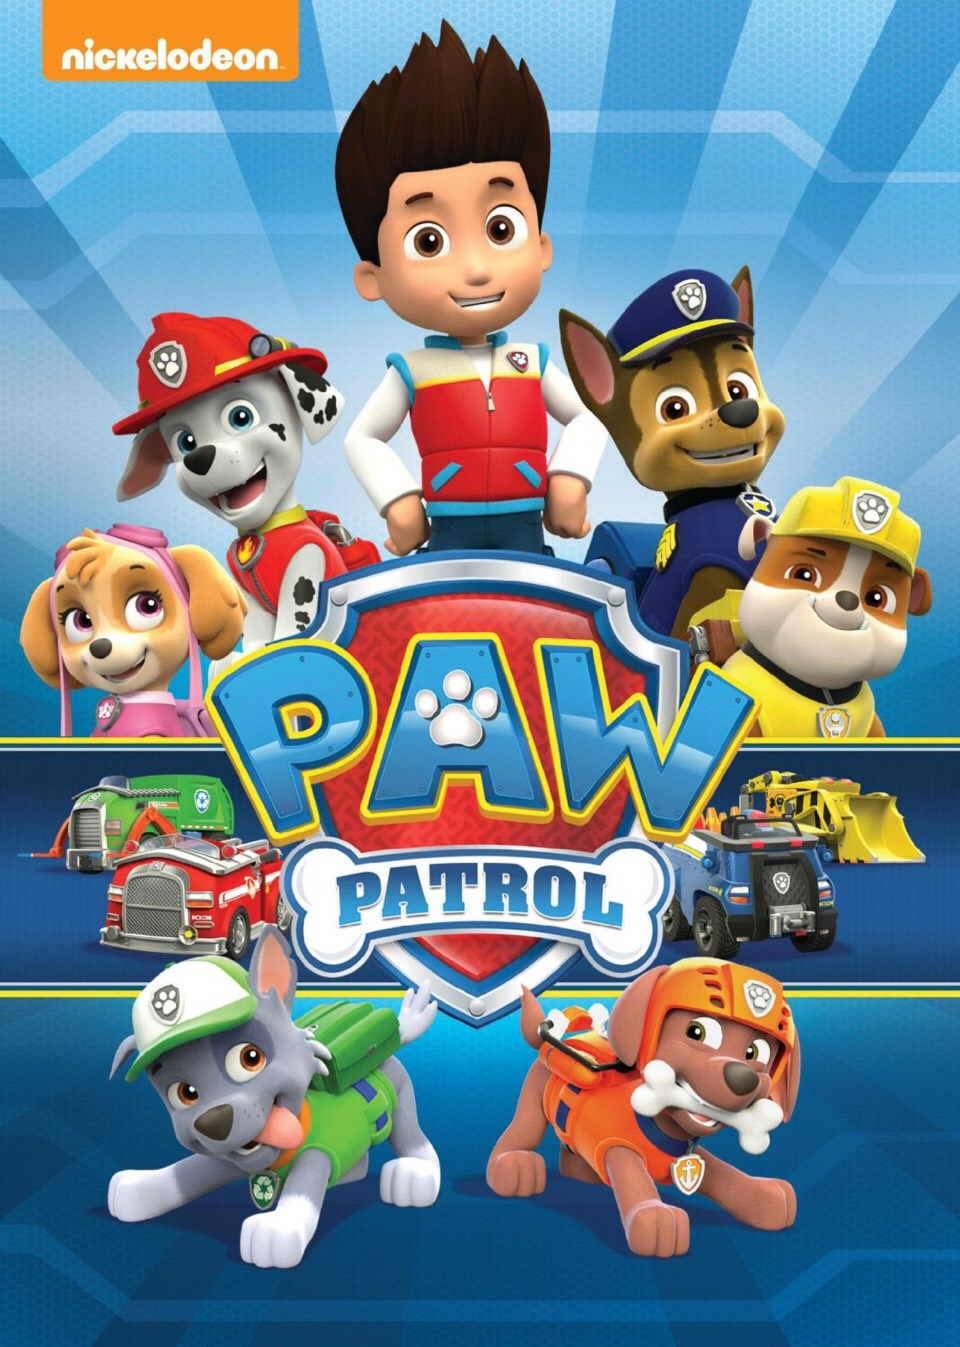 5. Paw Patrol  In Adventure Bay, these 6 adorable pups and their leader, Ryder will teach the children the value of teamwork and how to work together. This also brings out the importance of good citizenship and problem solving skills!